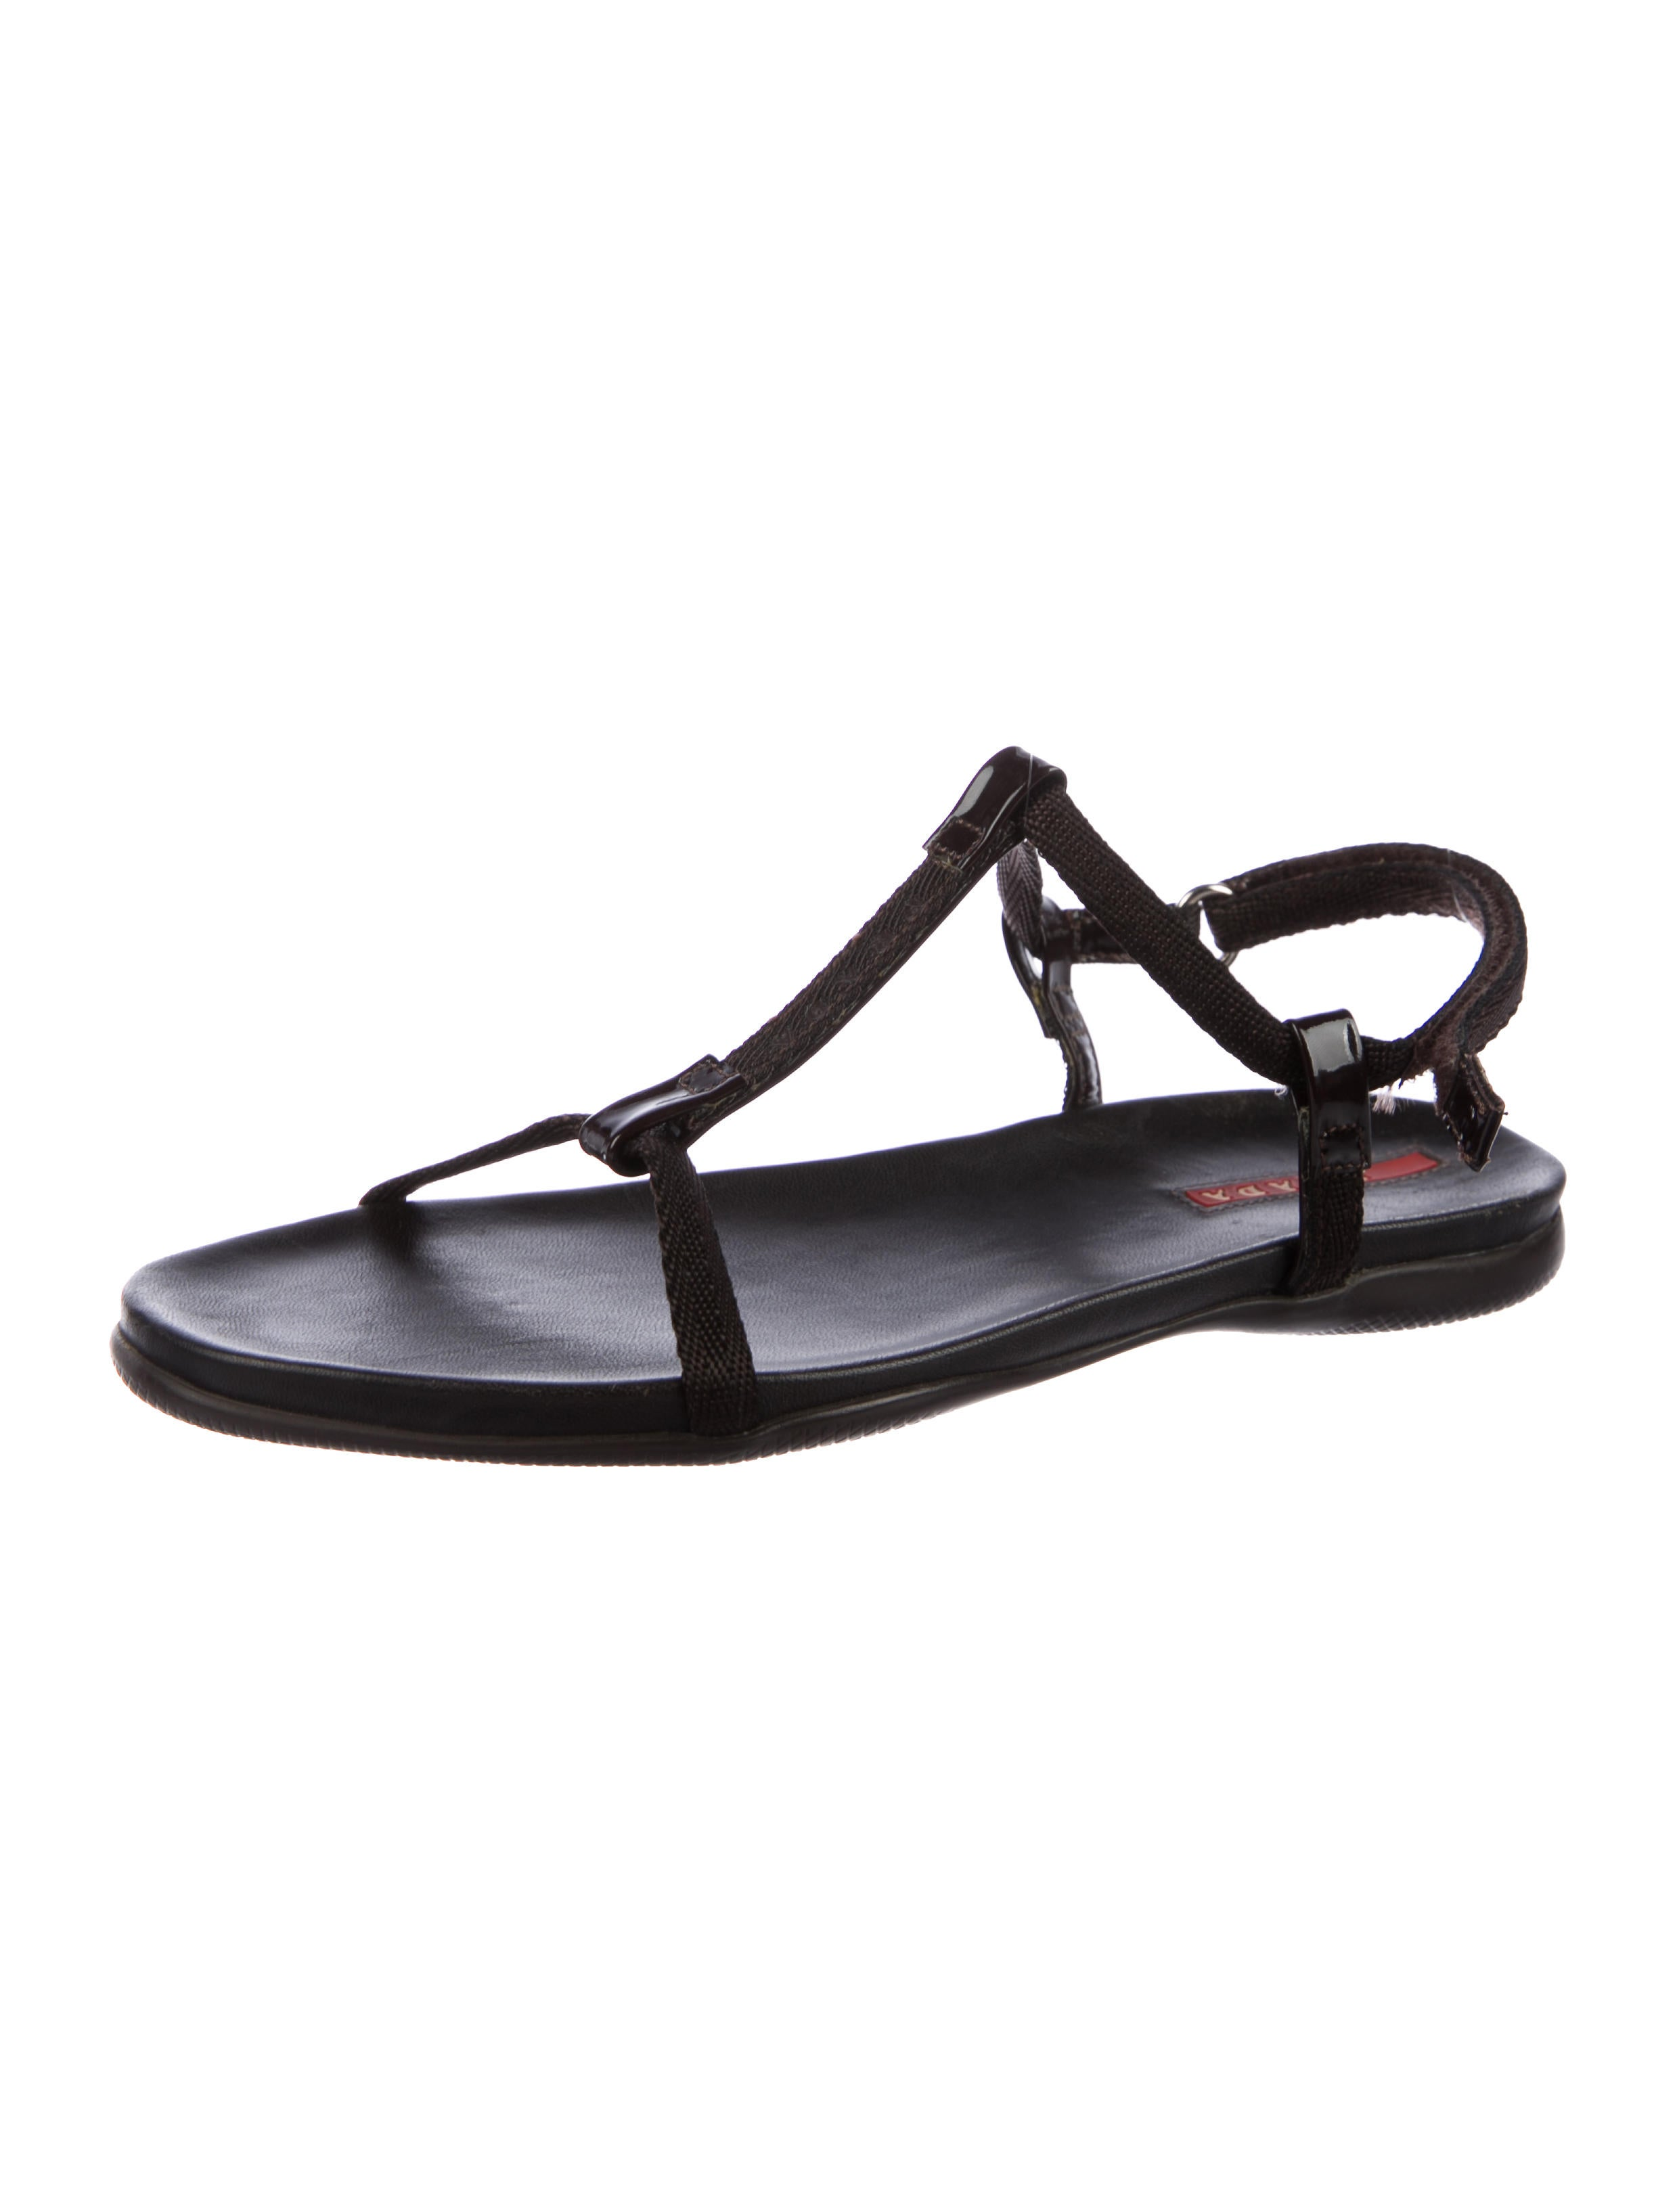 Cheapest cheap online Prada Sport Woven T-Strap Sandals shopping online cheap online low price cheap price jCOYNE